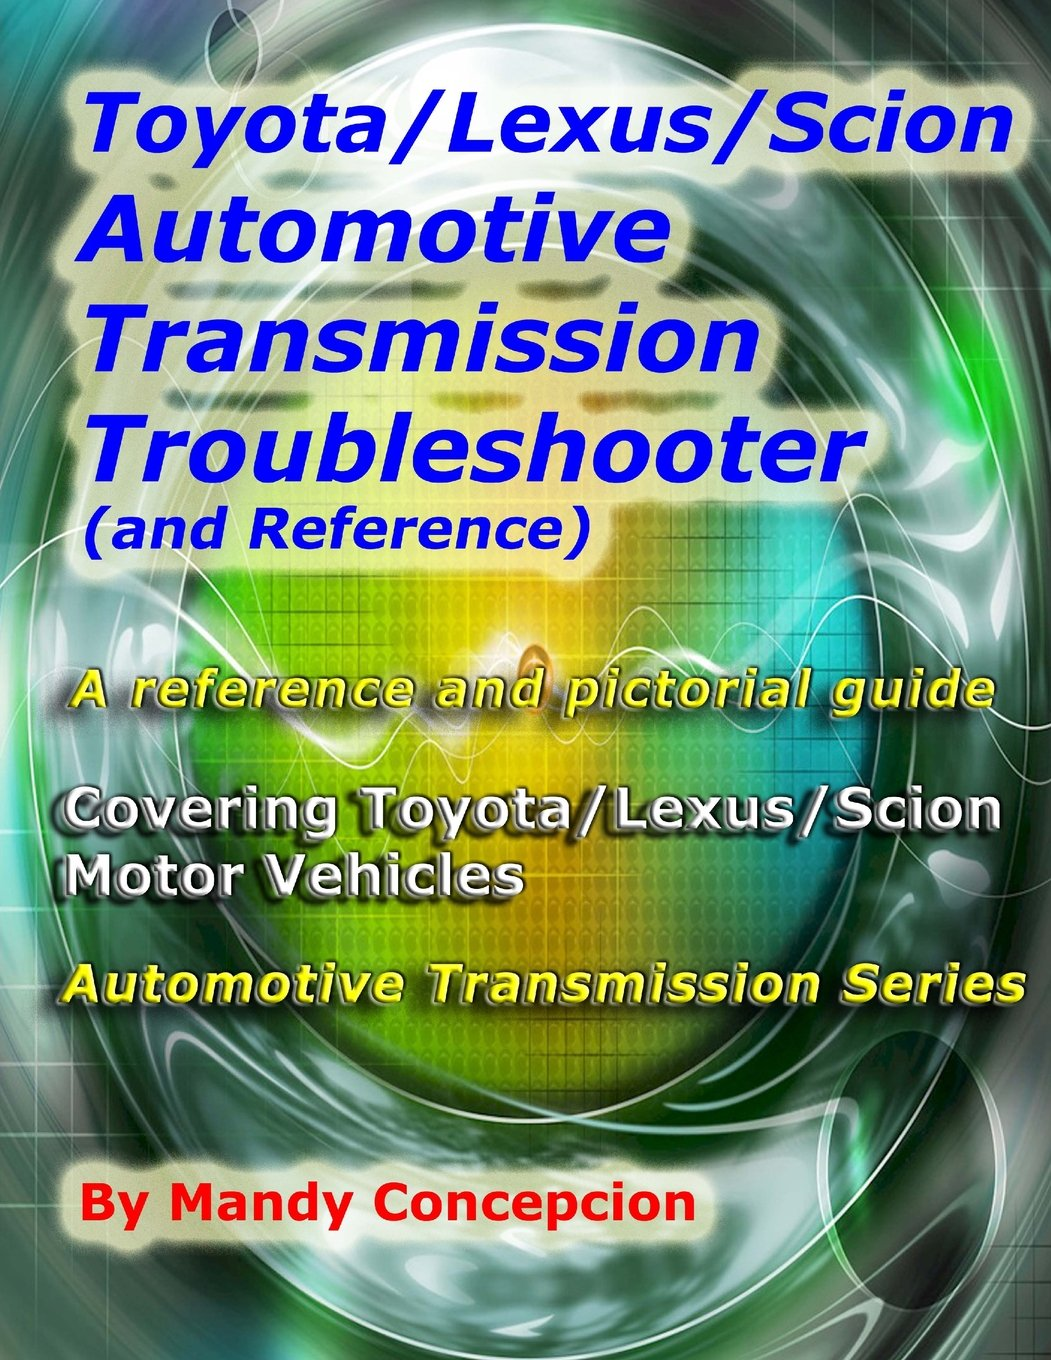 Toyota Lexus Scion Automotive Transmission Troubleshooter And 5l40e Wiring Diagram Reference Series Mandy Concepcion 9781466396616 Books